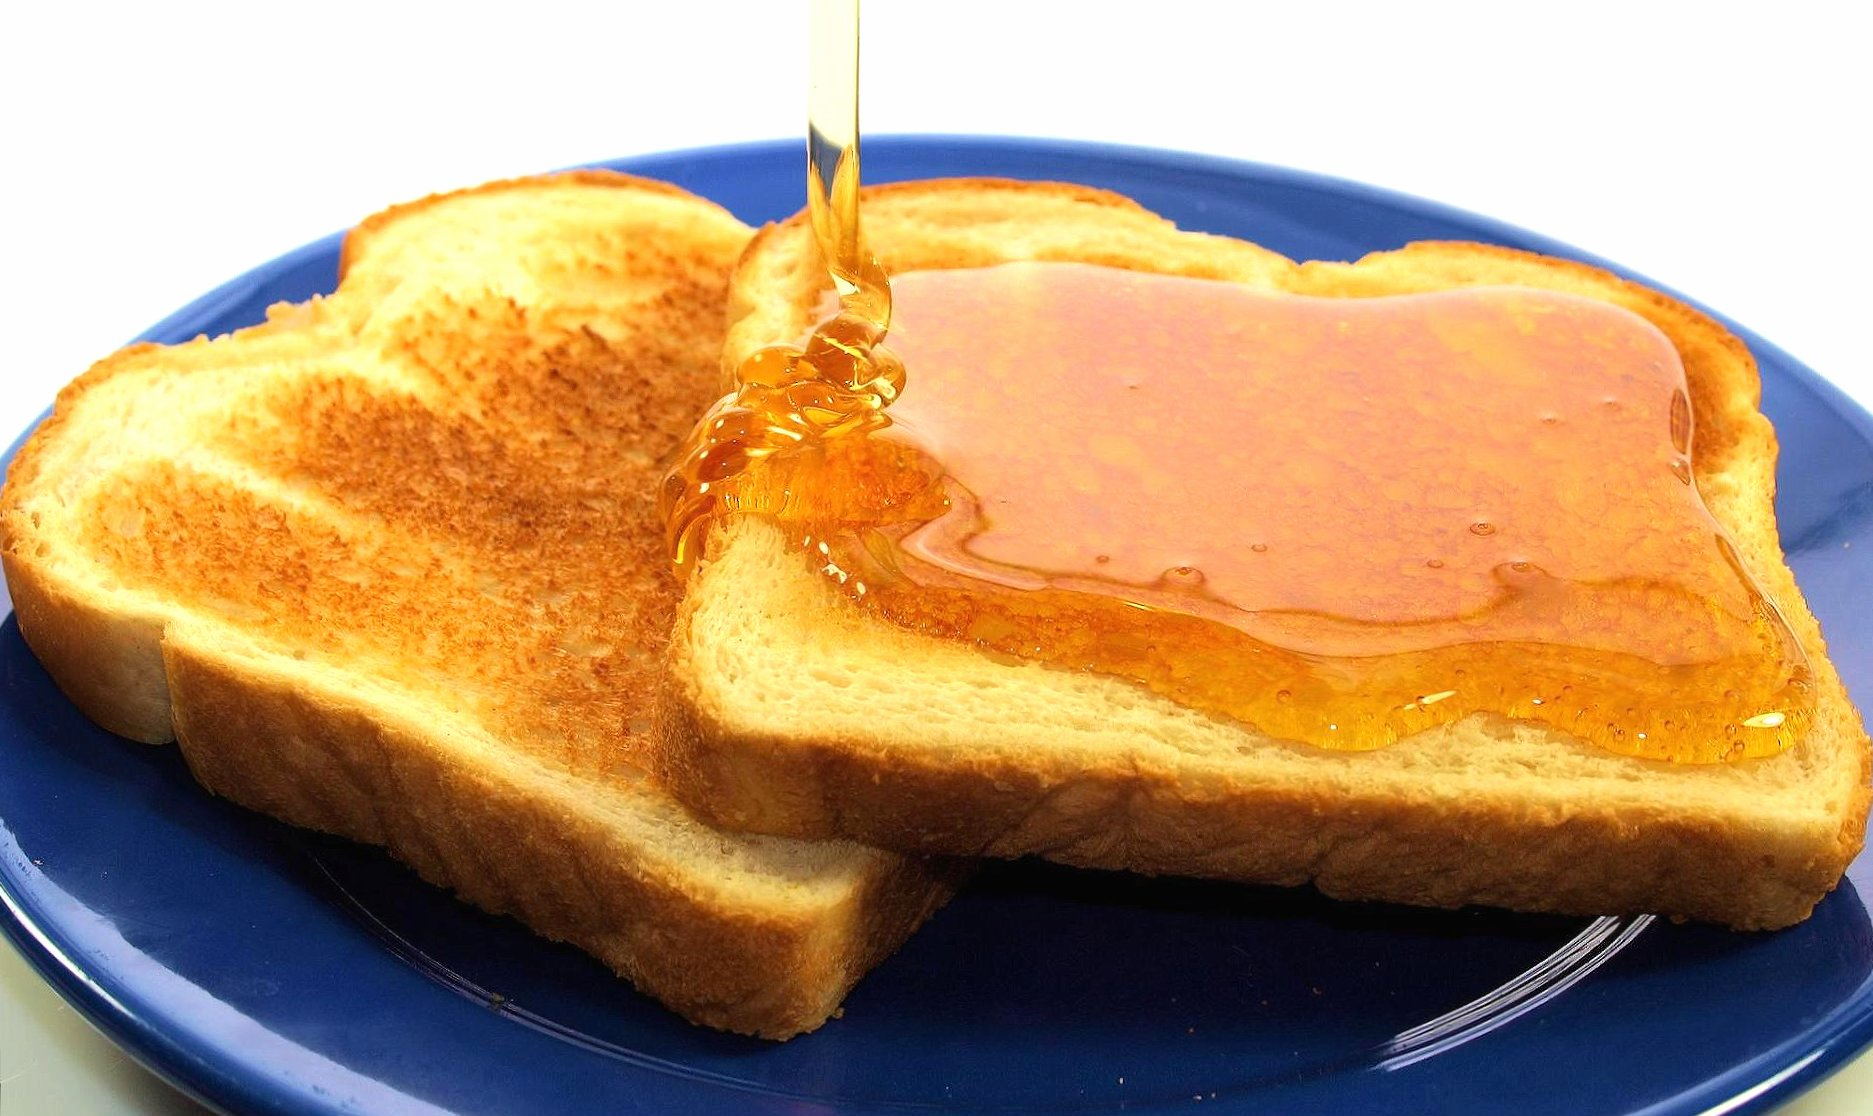 Slices of toast with honey wallpapers HD quality